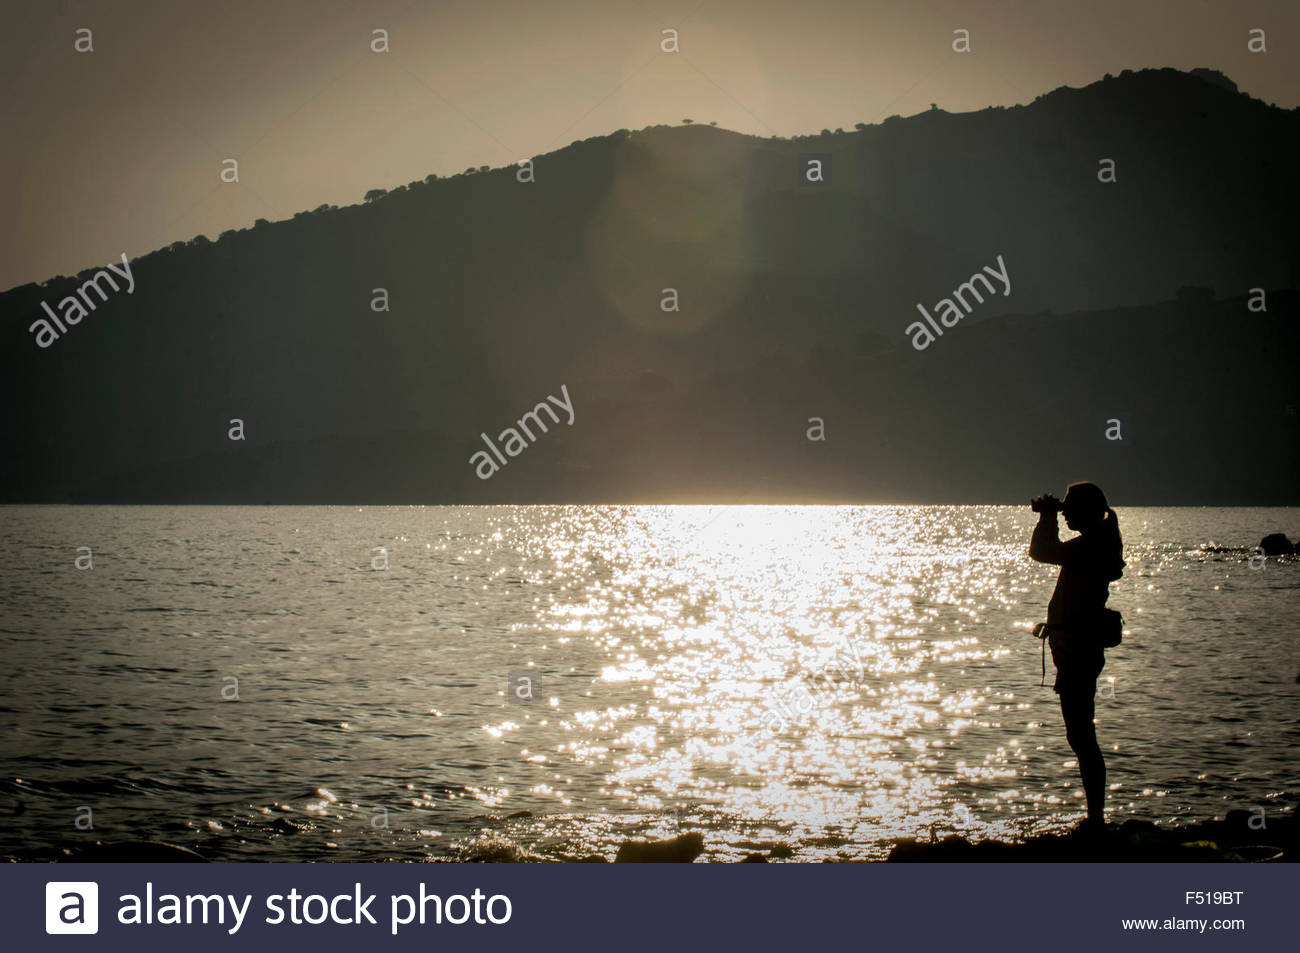 Hege Bjomebye is a voluntary aid worker from Norway and she uses her binoculars to spot the incoming boats to Lesbos - Stock Image